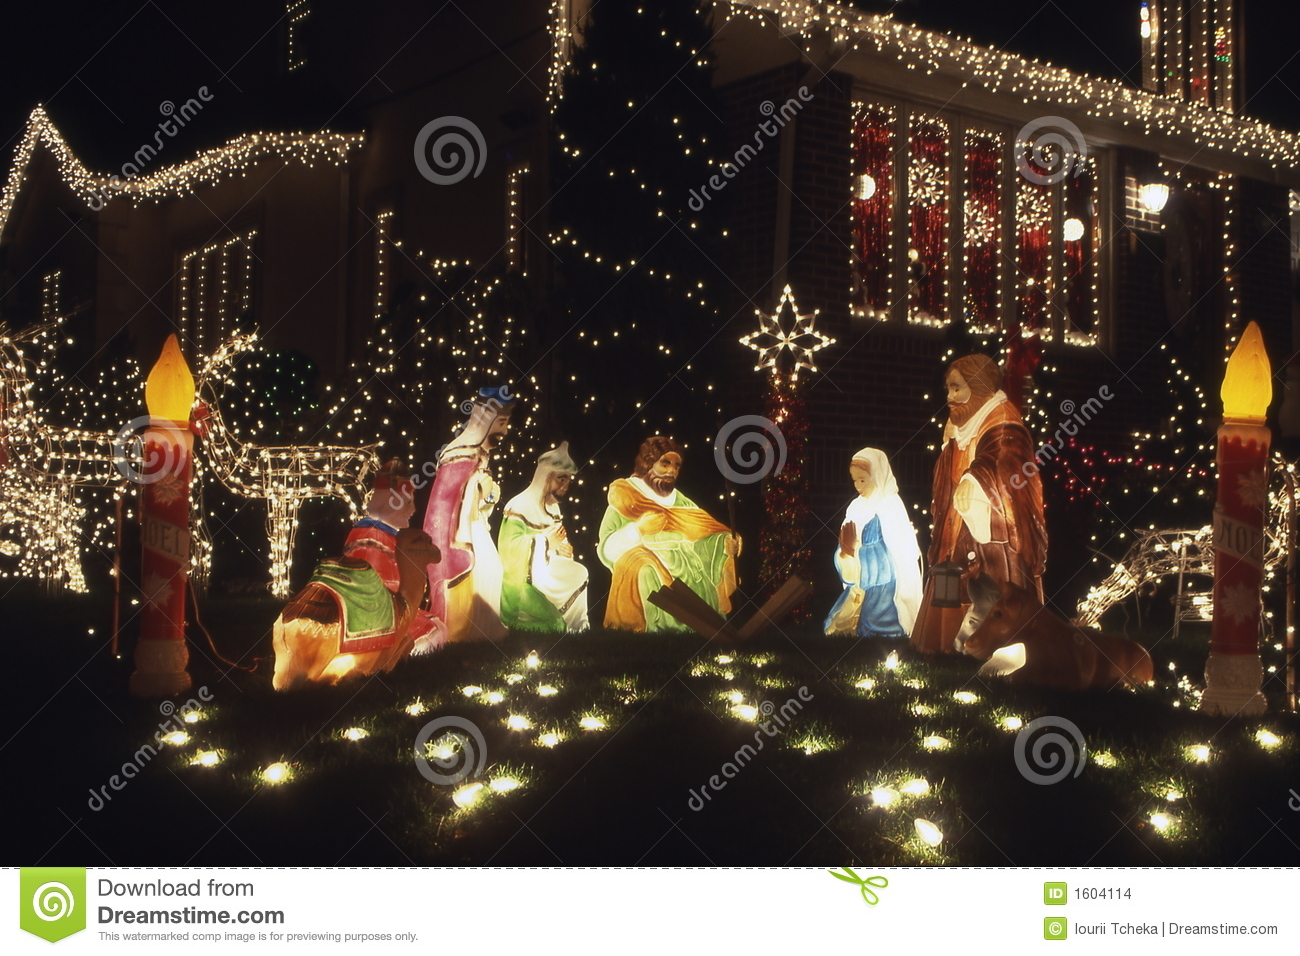 Christmas Decoration.Jesus. Stock Images - Image: 1604114